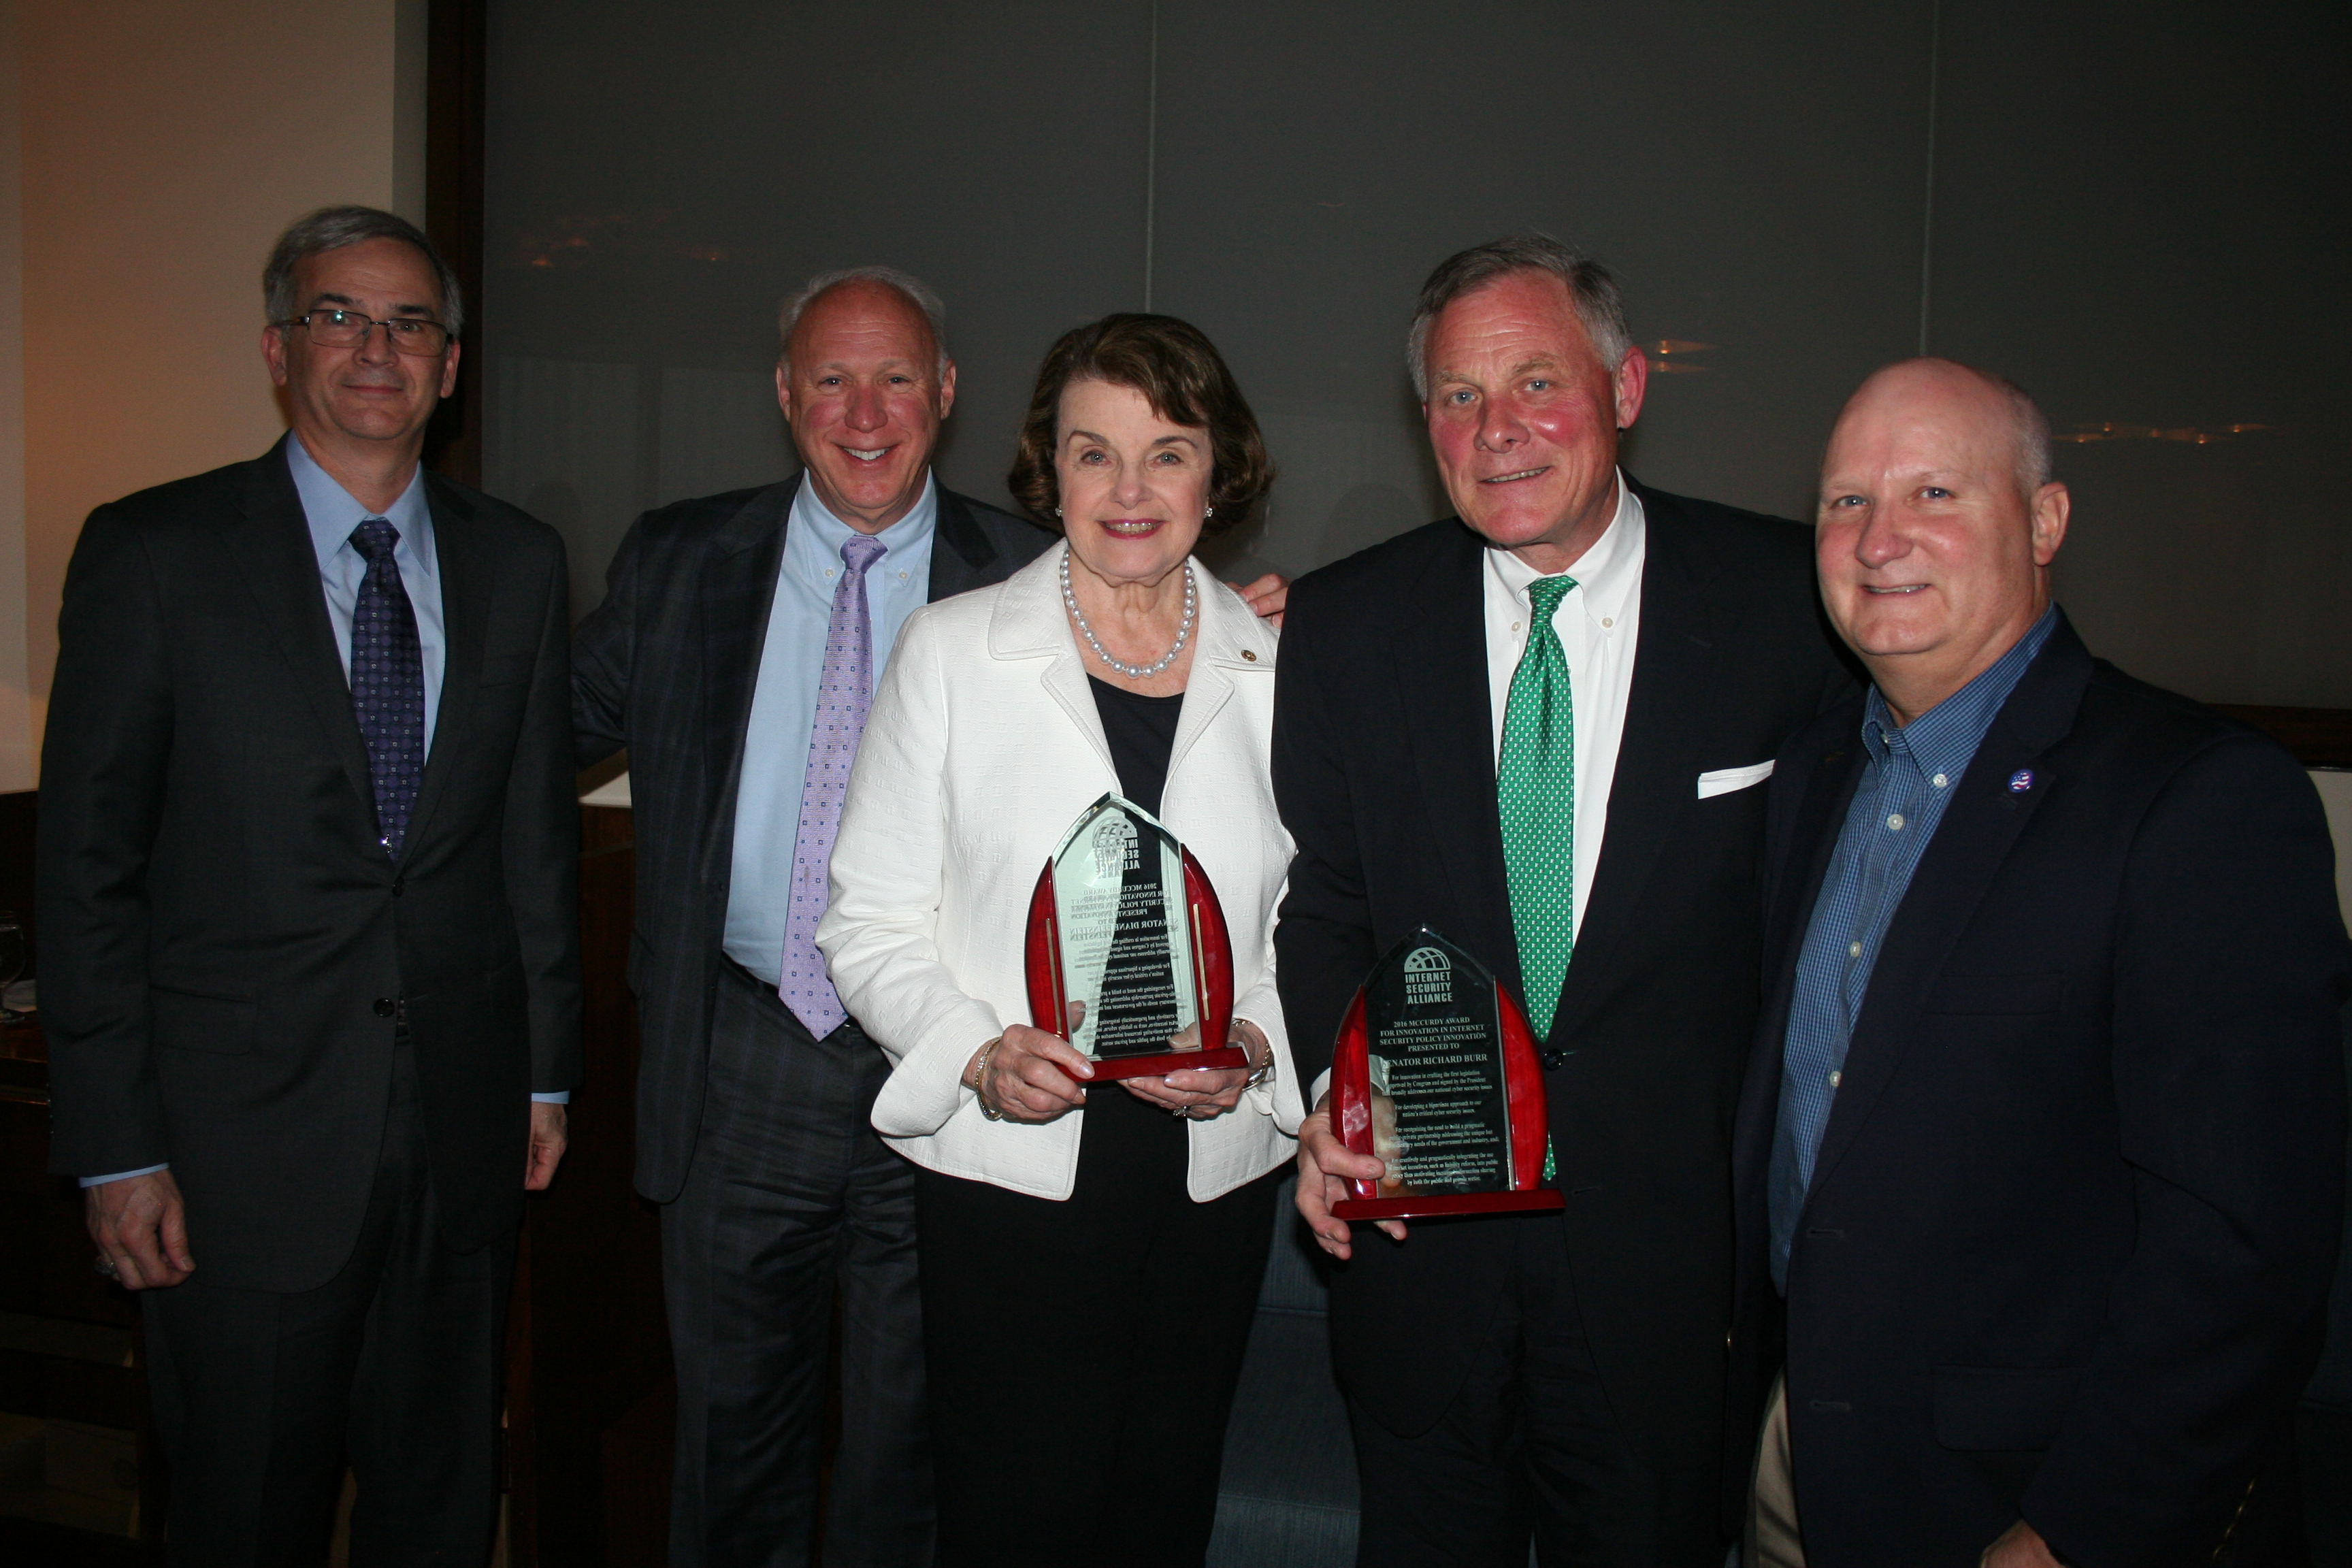 Senate Intelligence Committee Chairman Richard Burr (center left) and Ranking Member Dianne Feinstein (center right) receive the McCurdy Award in 2016. At far right is ISA board member JR Williamson (Northrop Grumman). At extreme left are ISA board members Jeff Brown (Raytheon) and Larry Clinton (ISA).